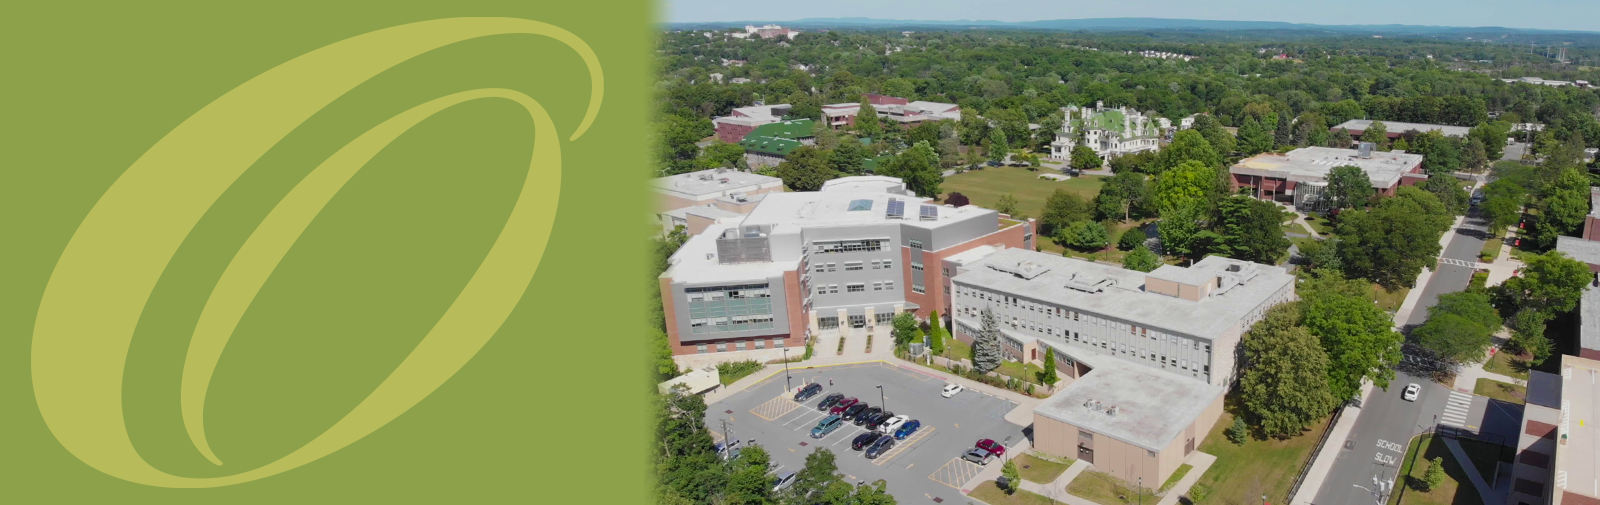 Aerial shot of Middletown Campus